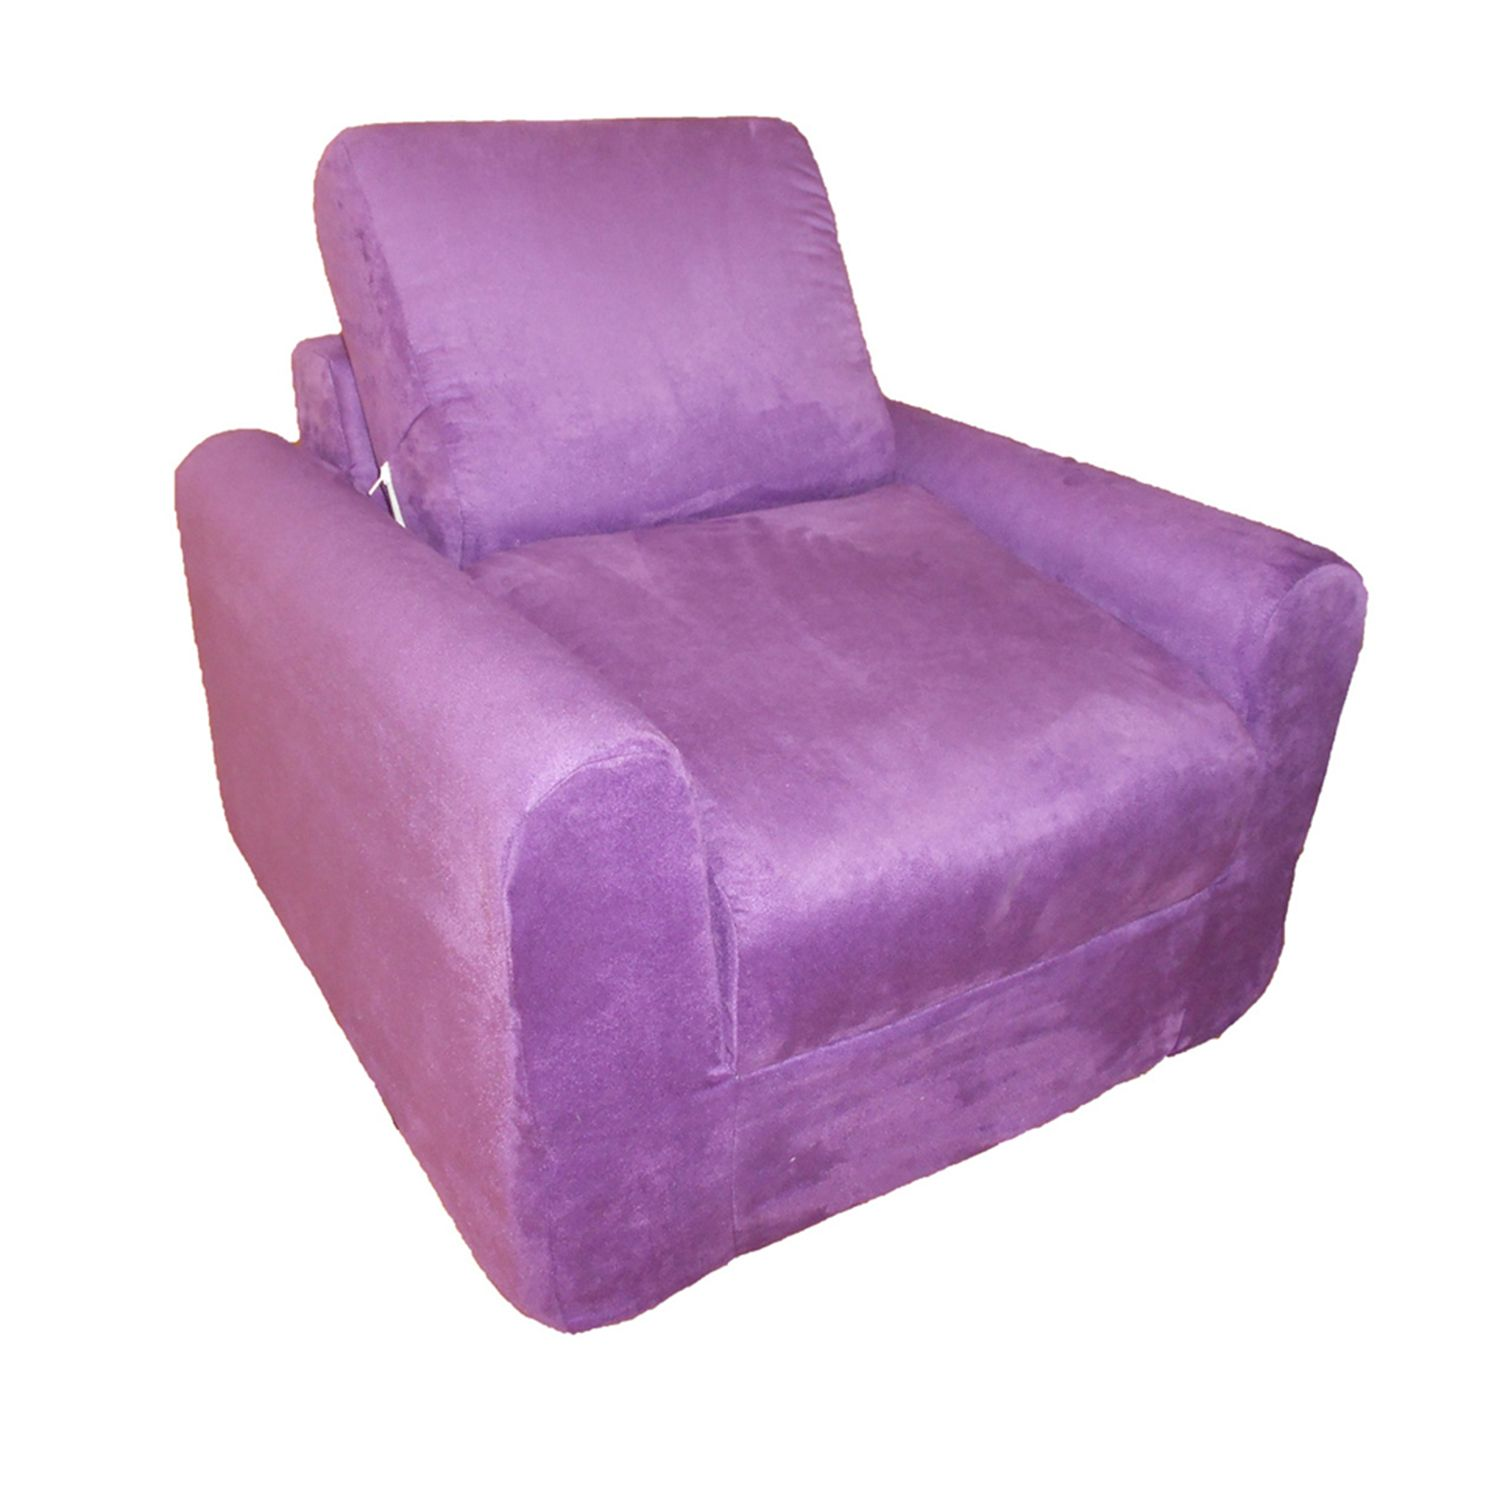 Fun Furnishings Microsuede Sleeper Chair   Kids